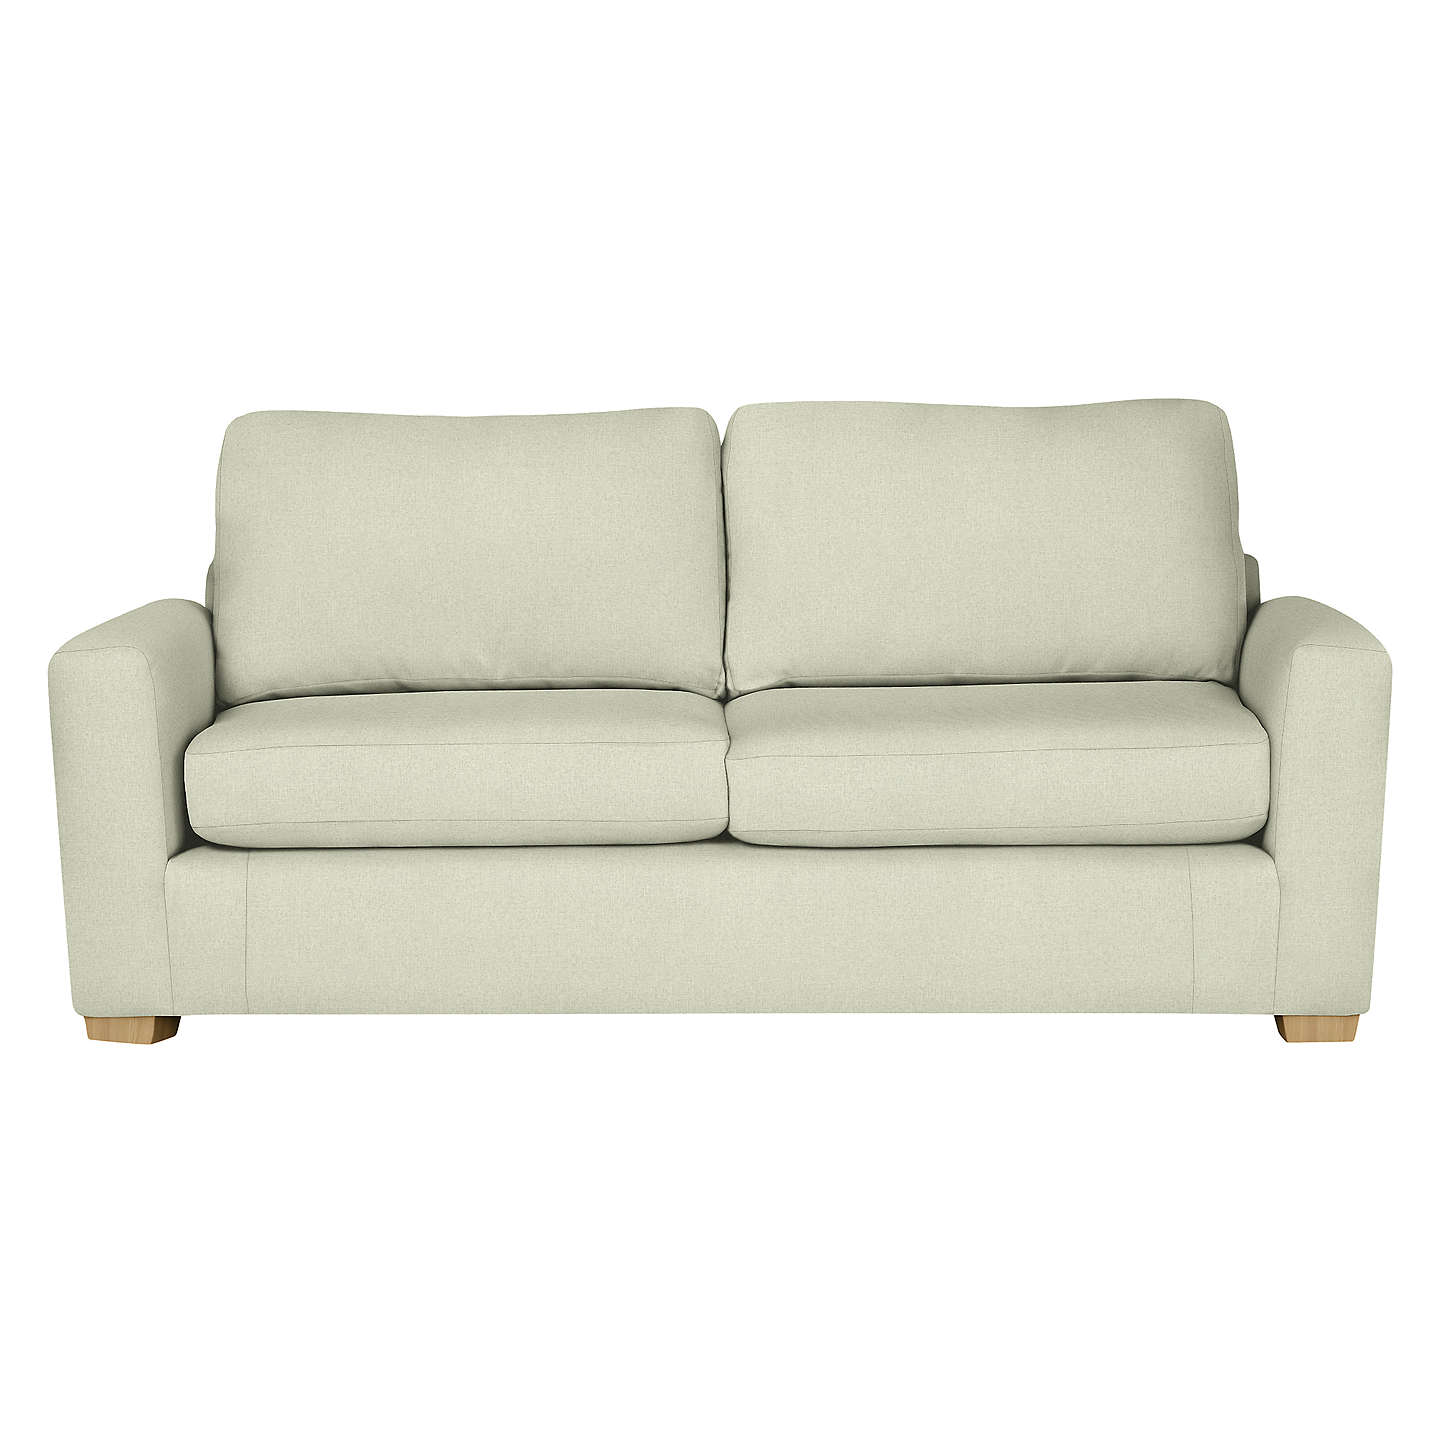 House By John Lewis Oliver Large 3 Seater Sofa, Light Leg